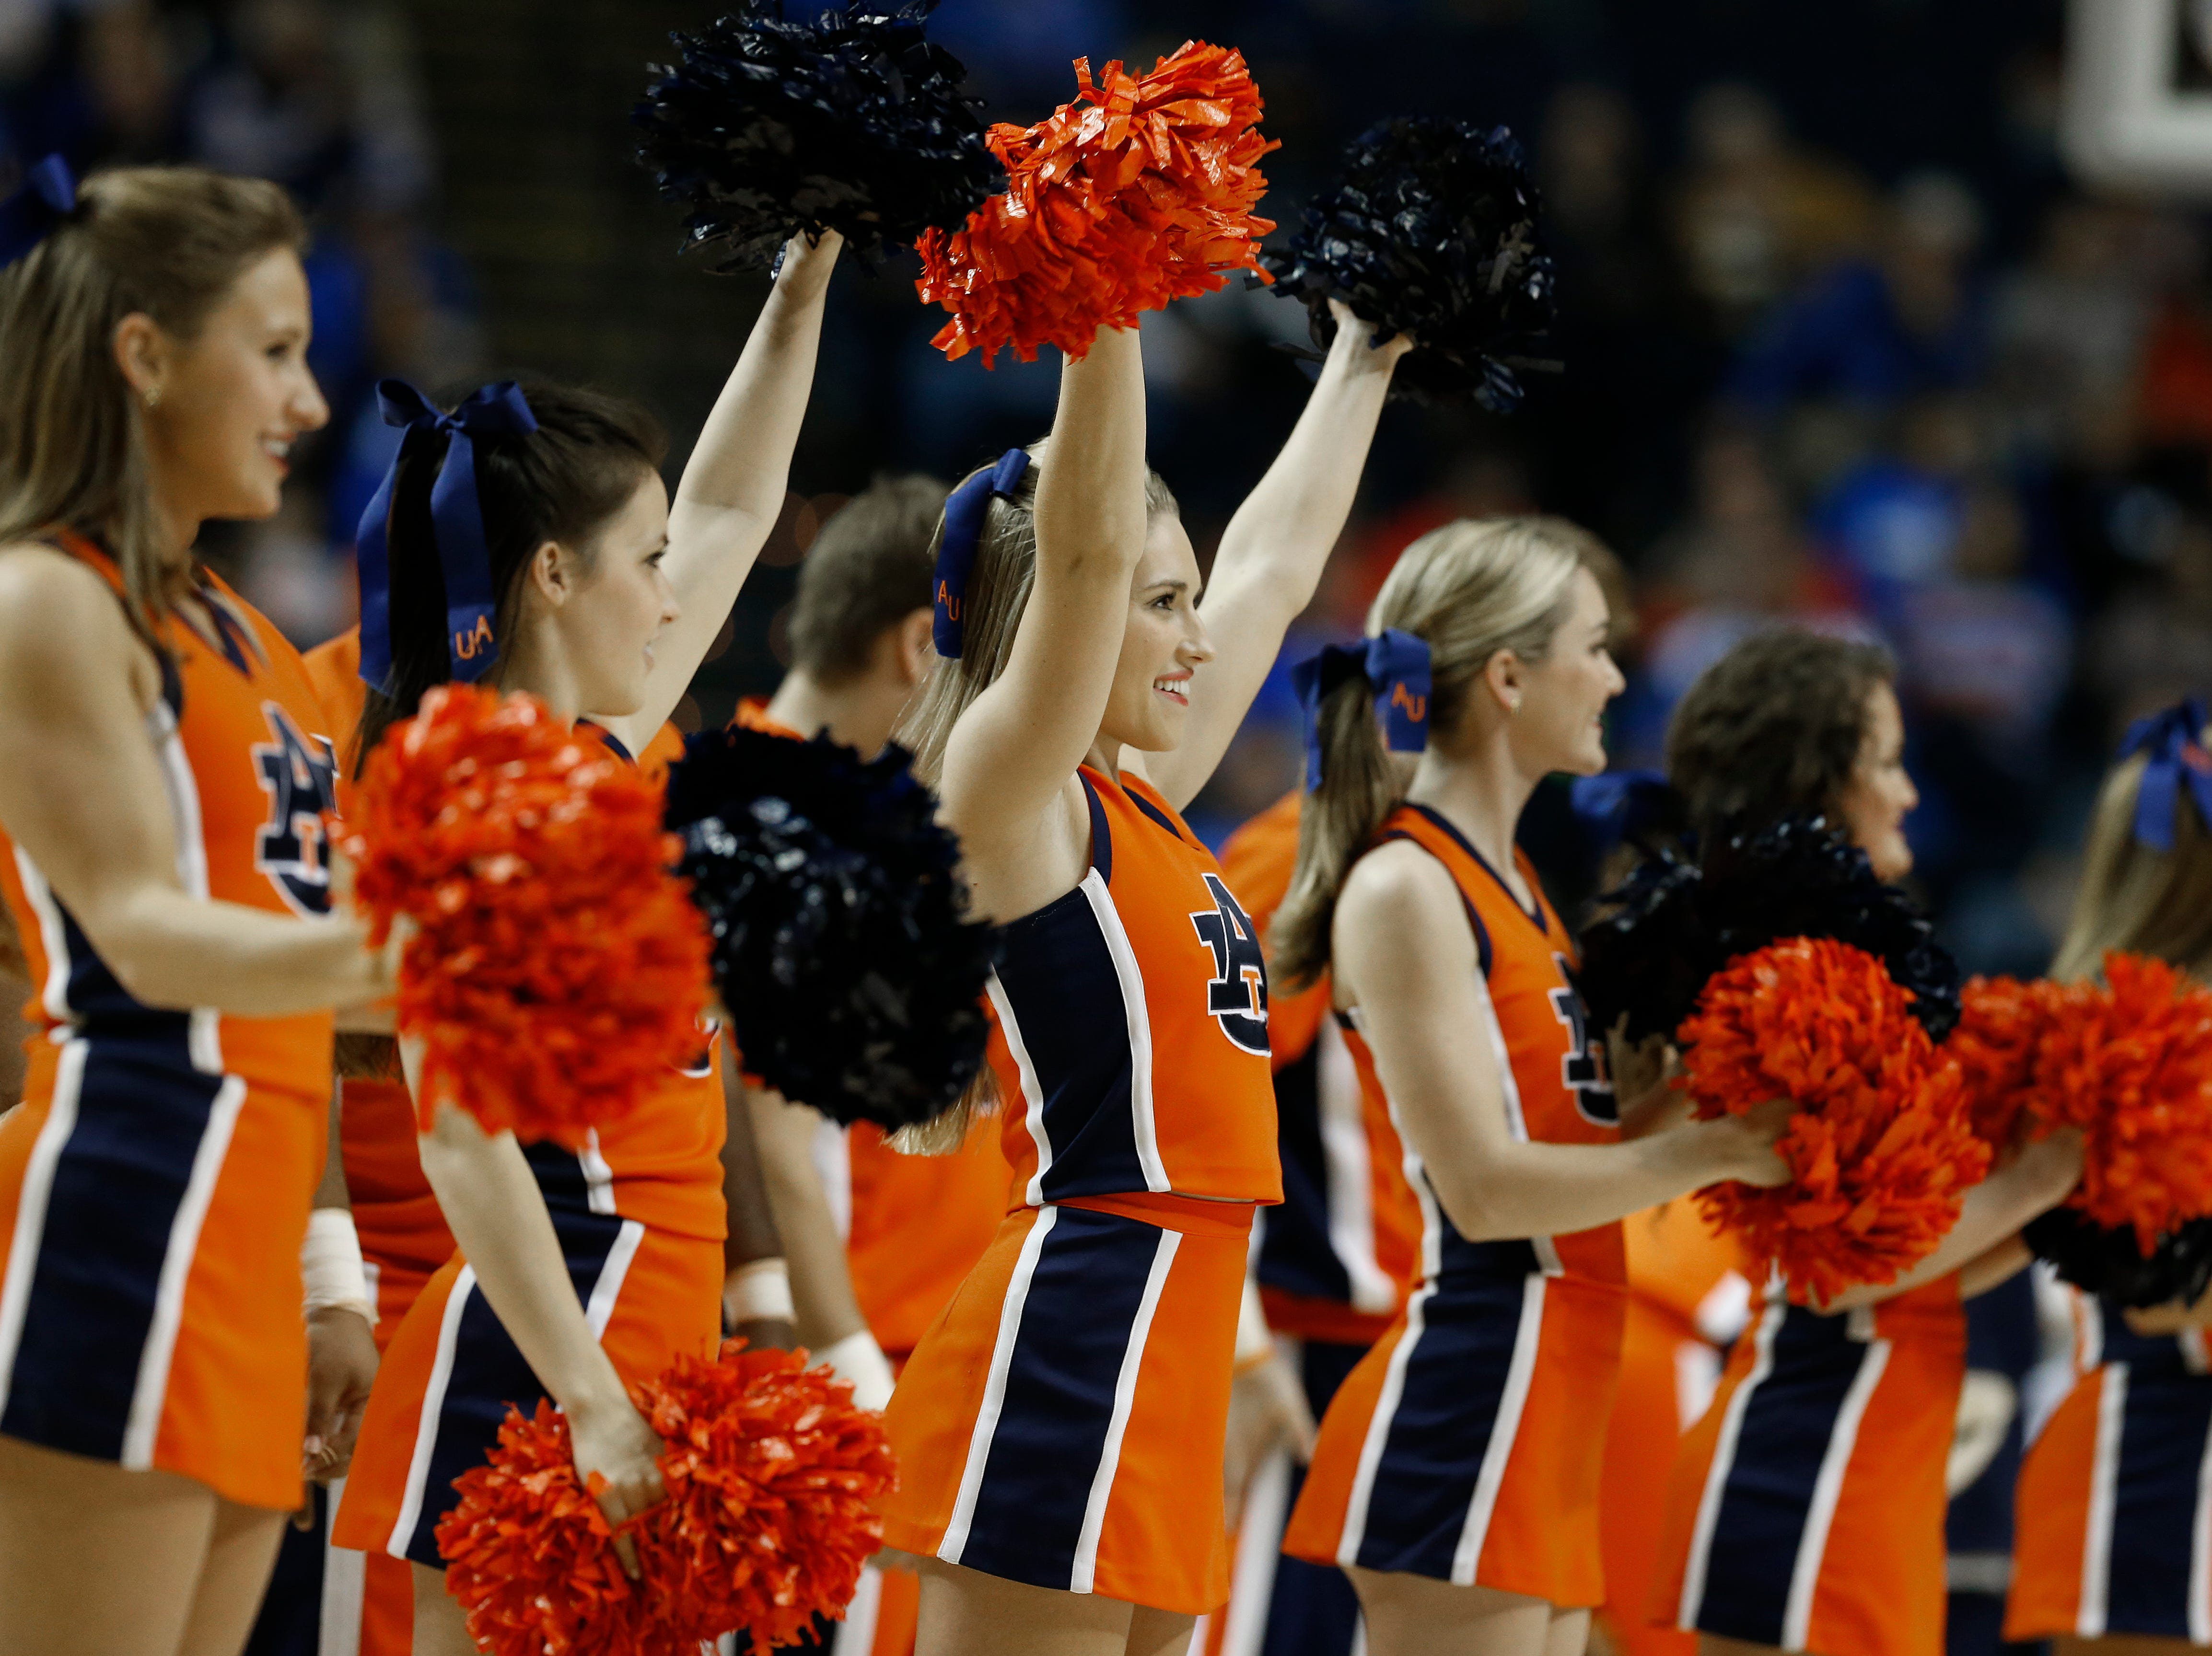 Auburn cheerleaders perform during the first half of an NCAA college basketball game in the second round of the Southeastern Conference tournament between Texas A&M and Auburn, Thursday, March 12, 2015, in Nashville, Tenn.  (AP Photo/Steve Helber)